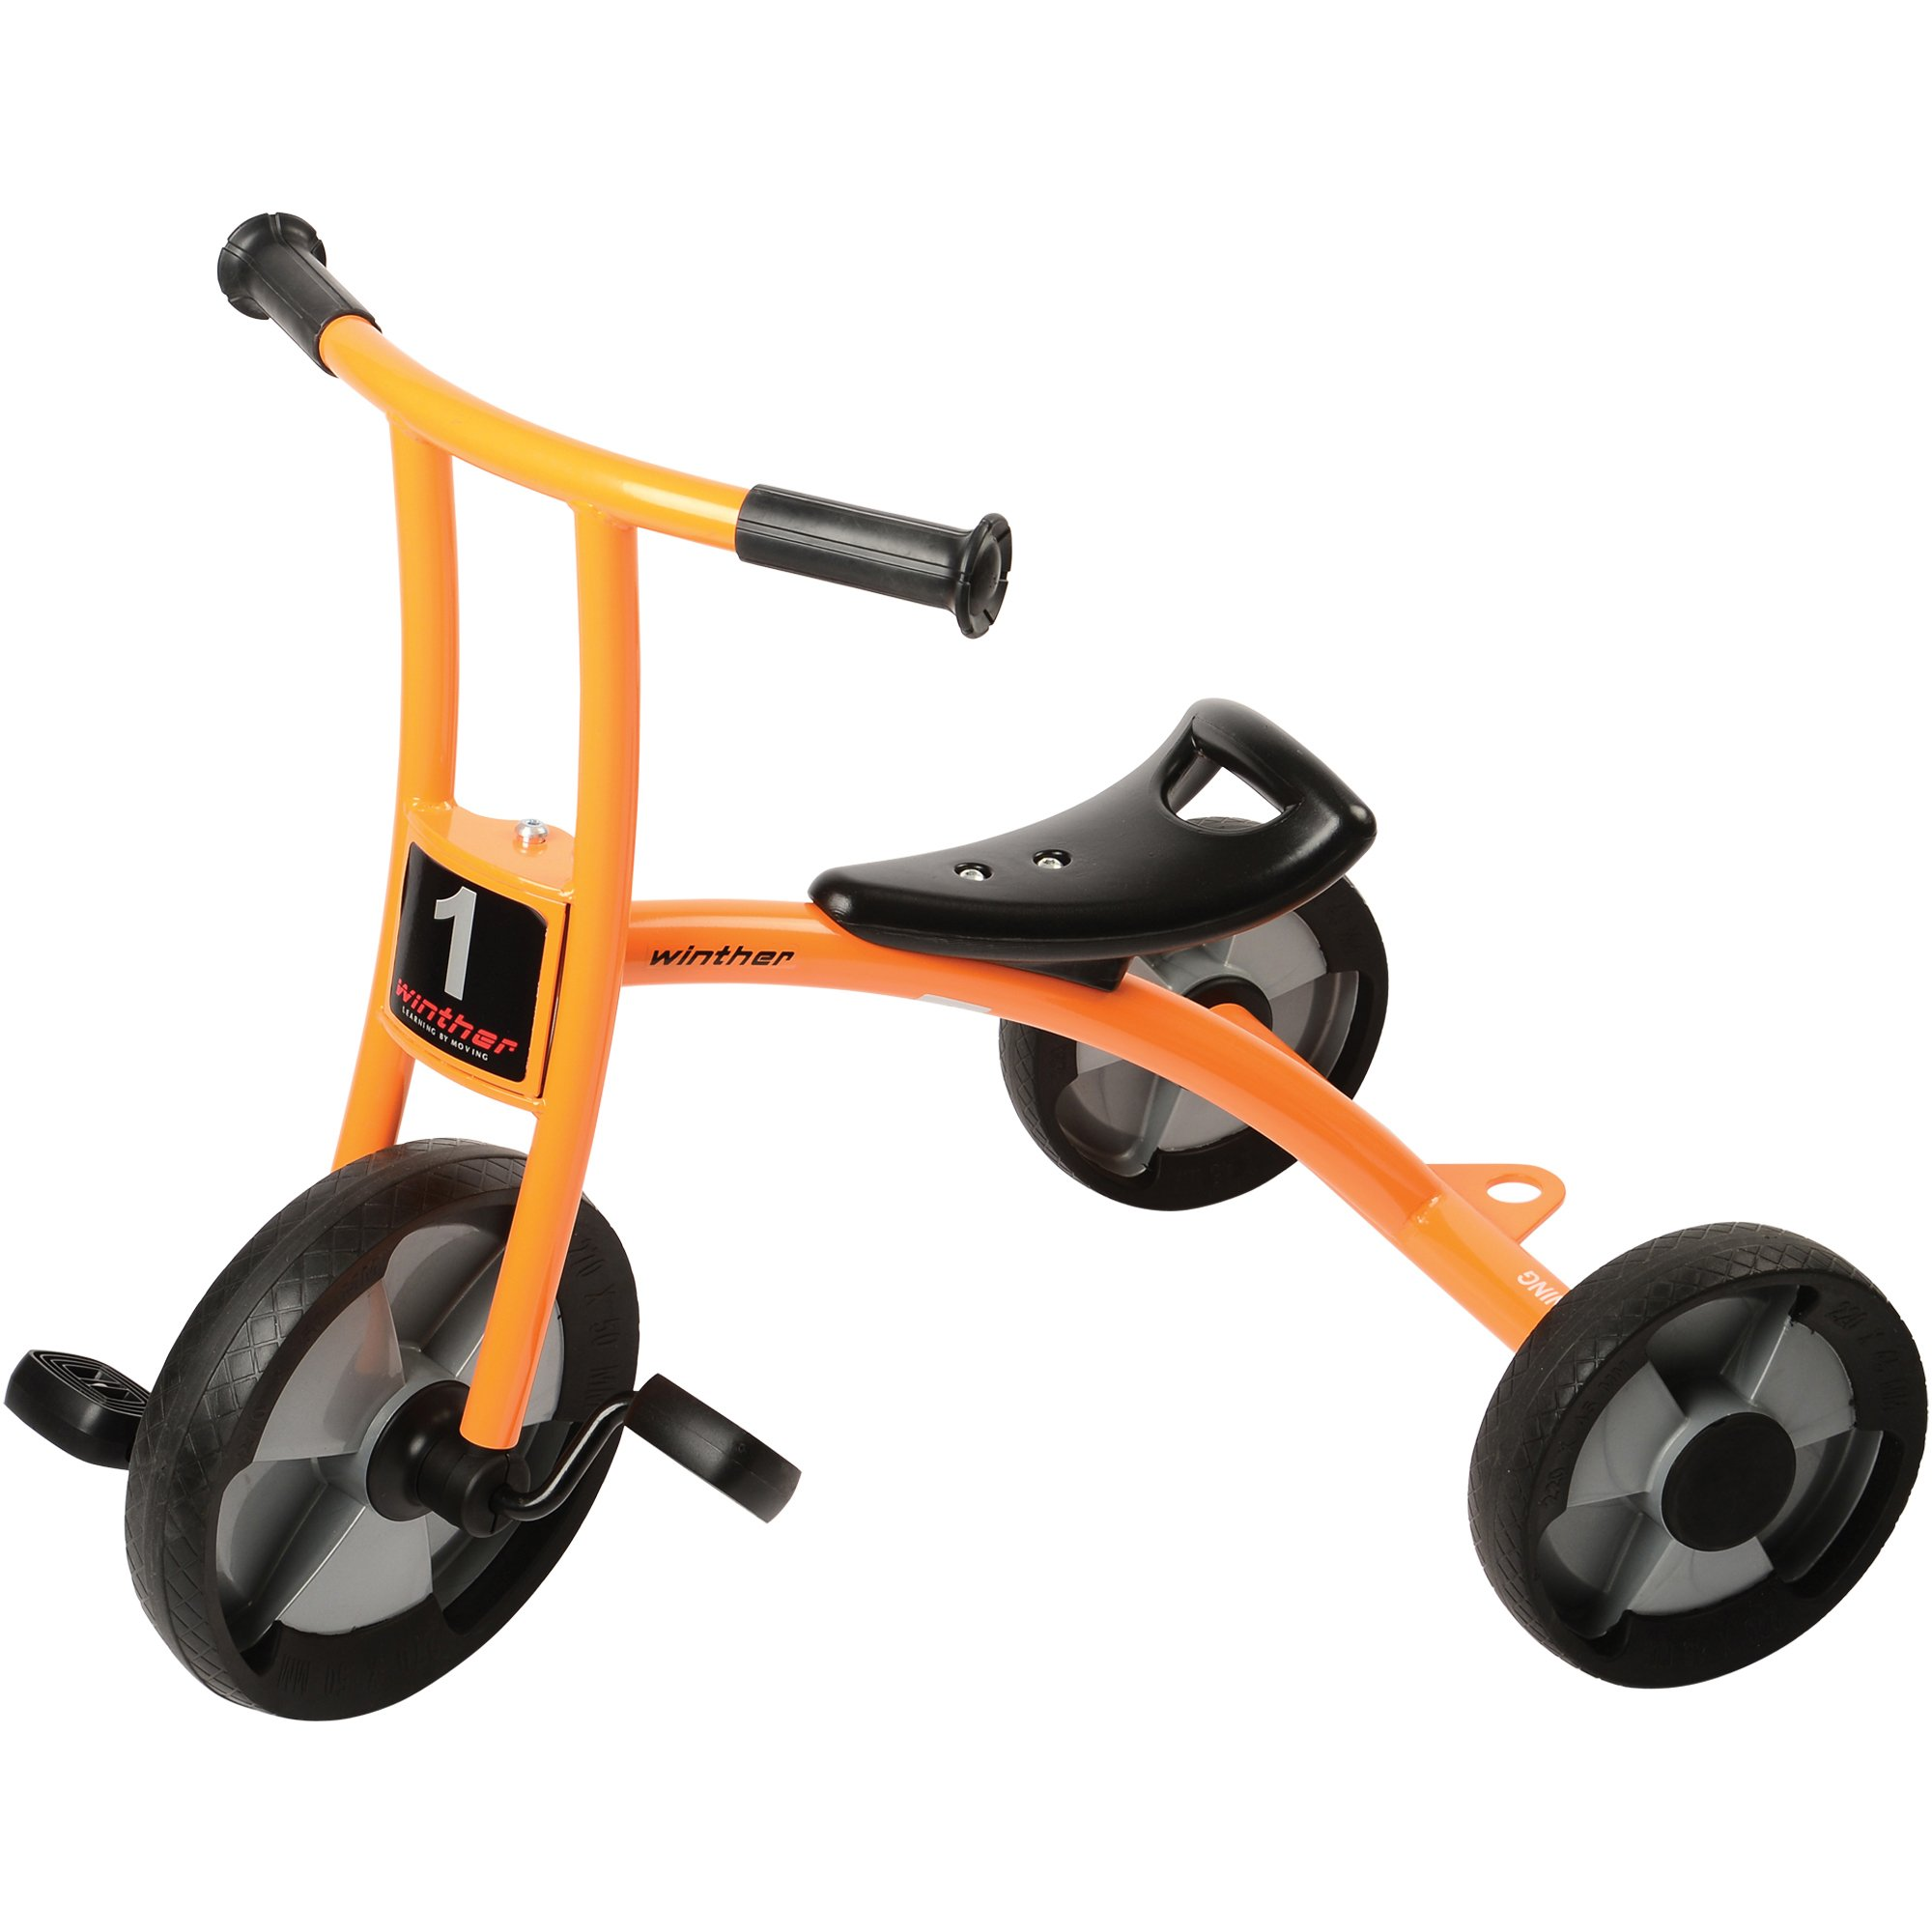 Constructive Playthings WIN-552 Circle Line Large Trike